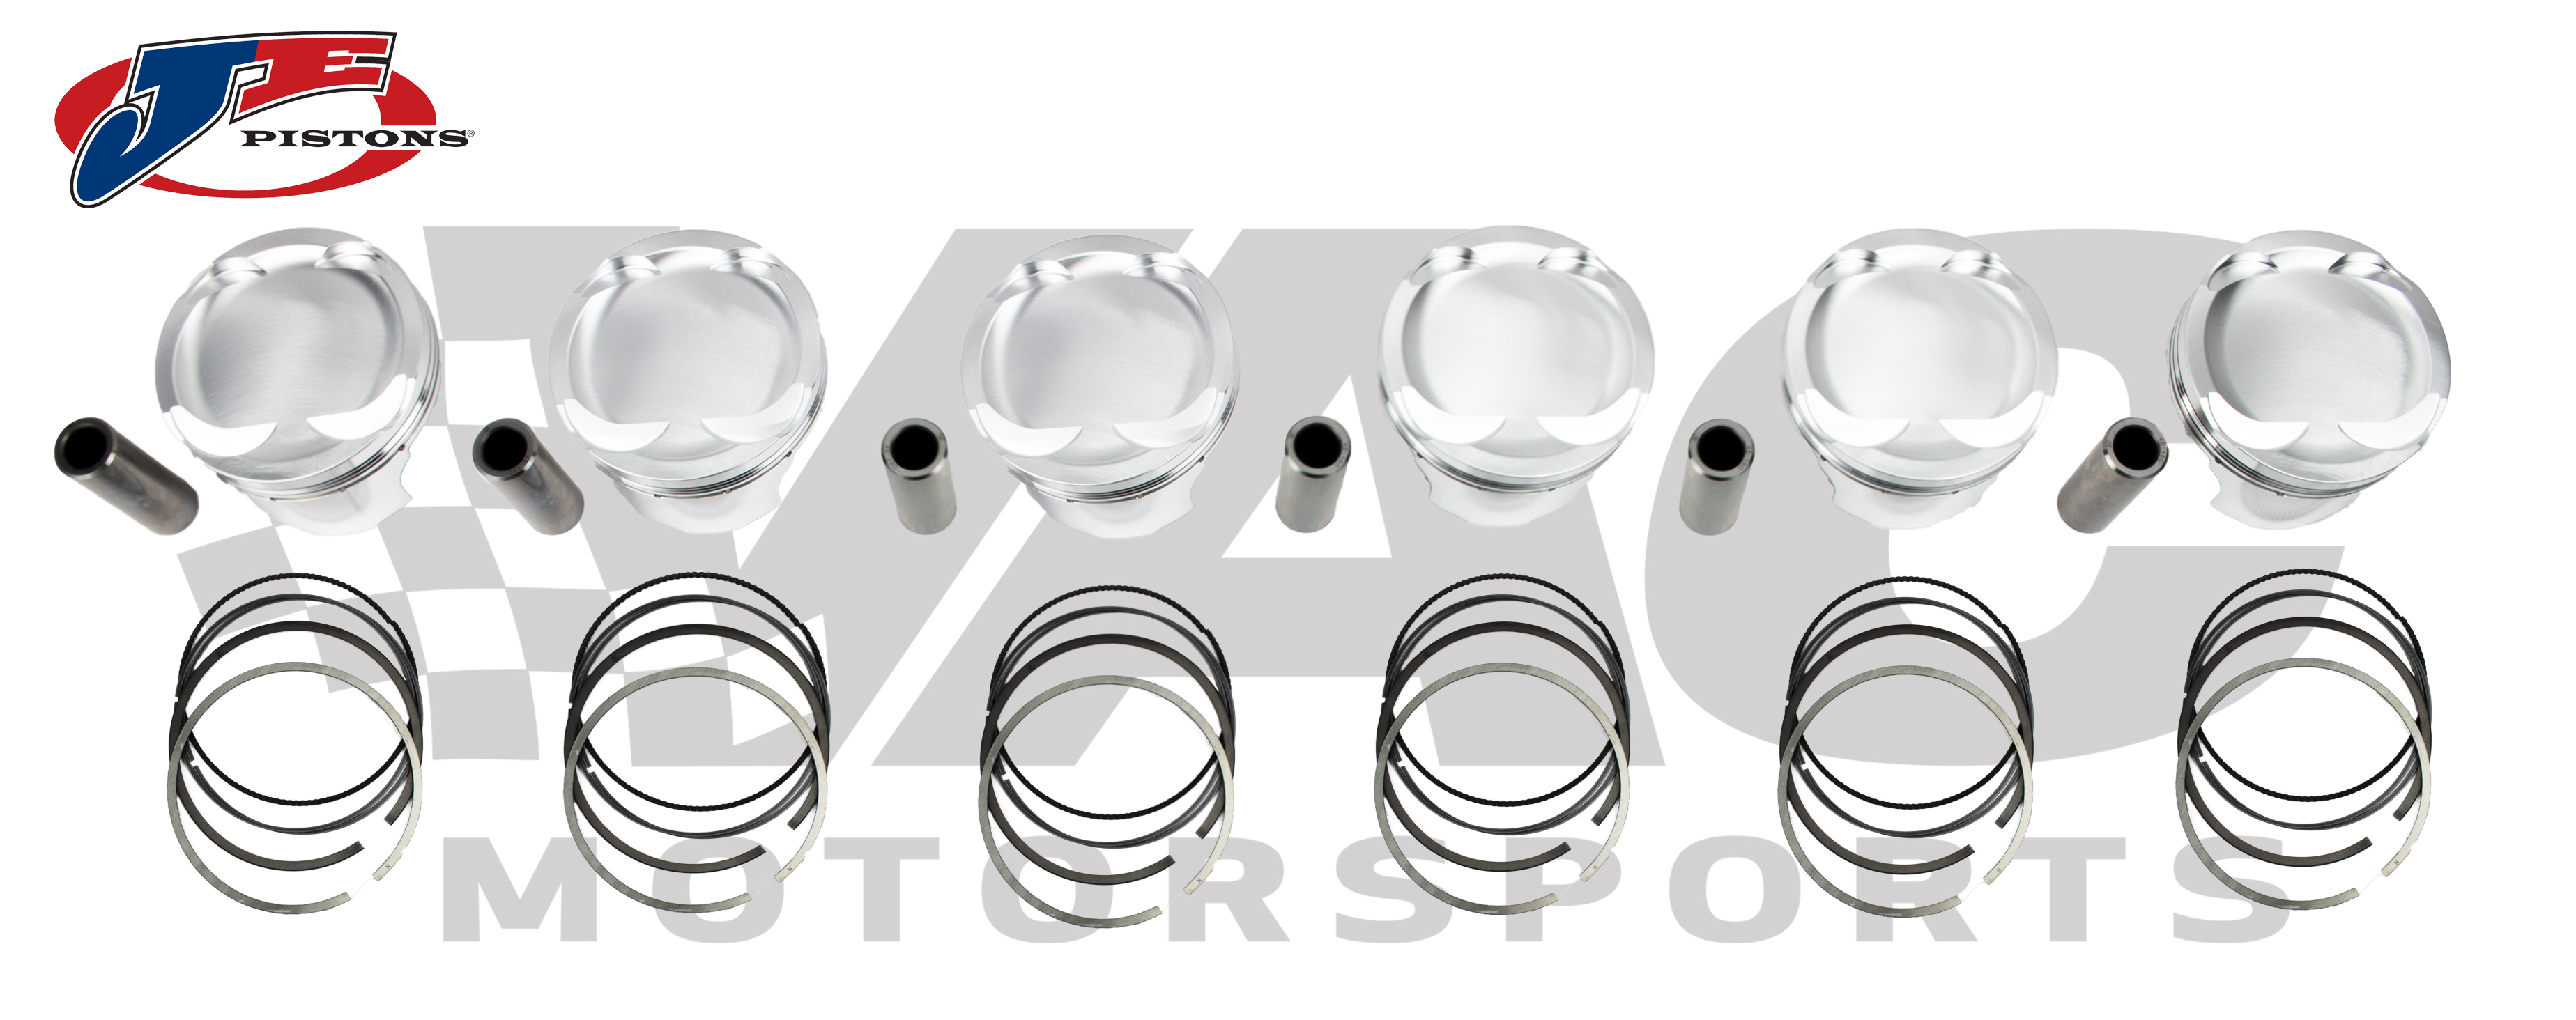 JE Forged Piston Set (M20 Engine, BMW E30 325, E34 525) THUMBNAIL